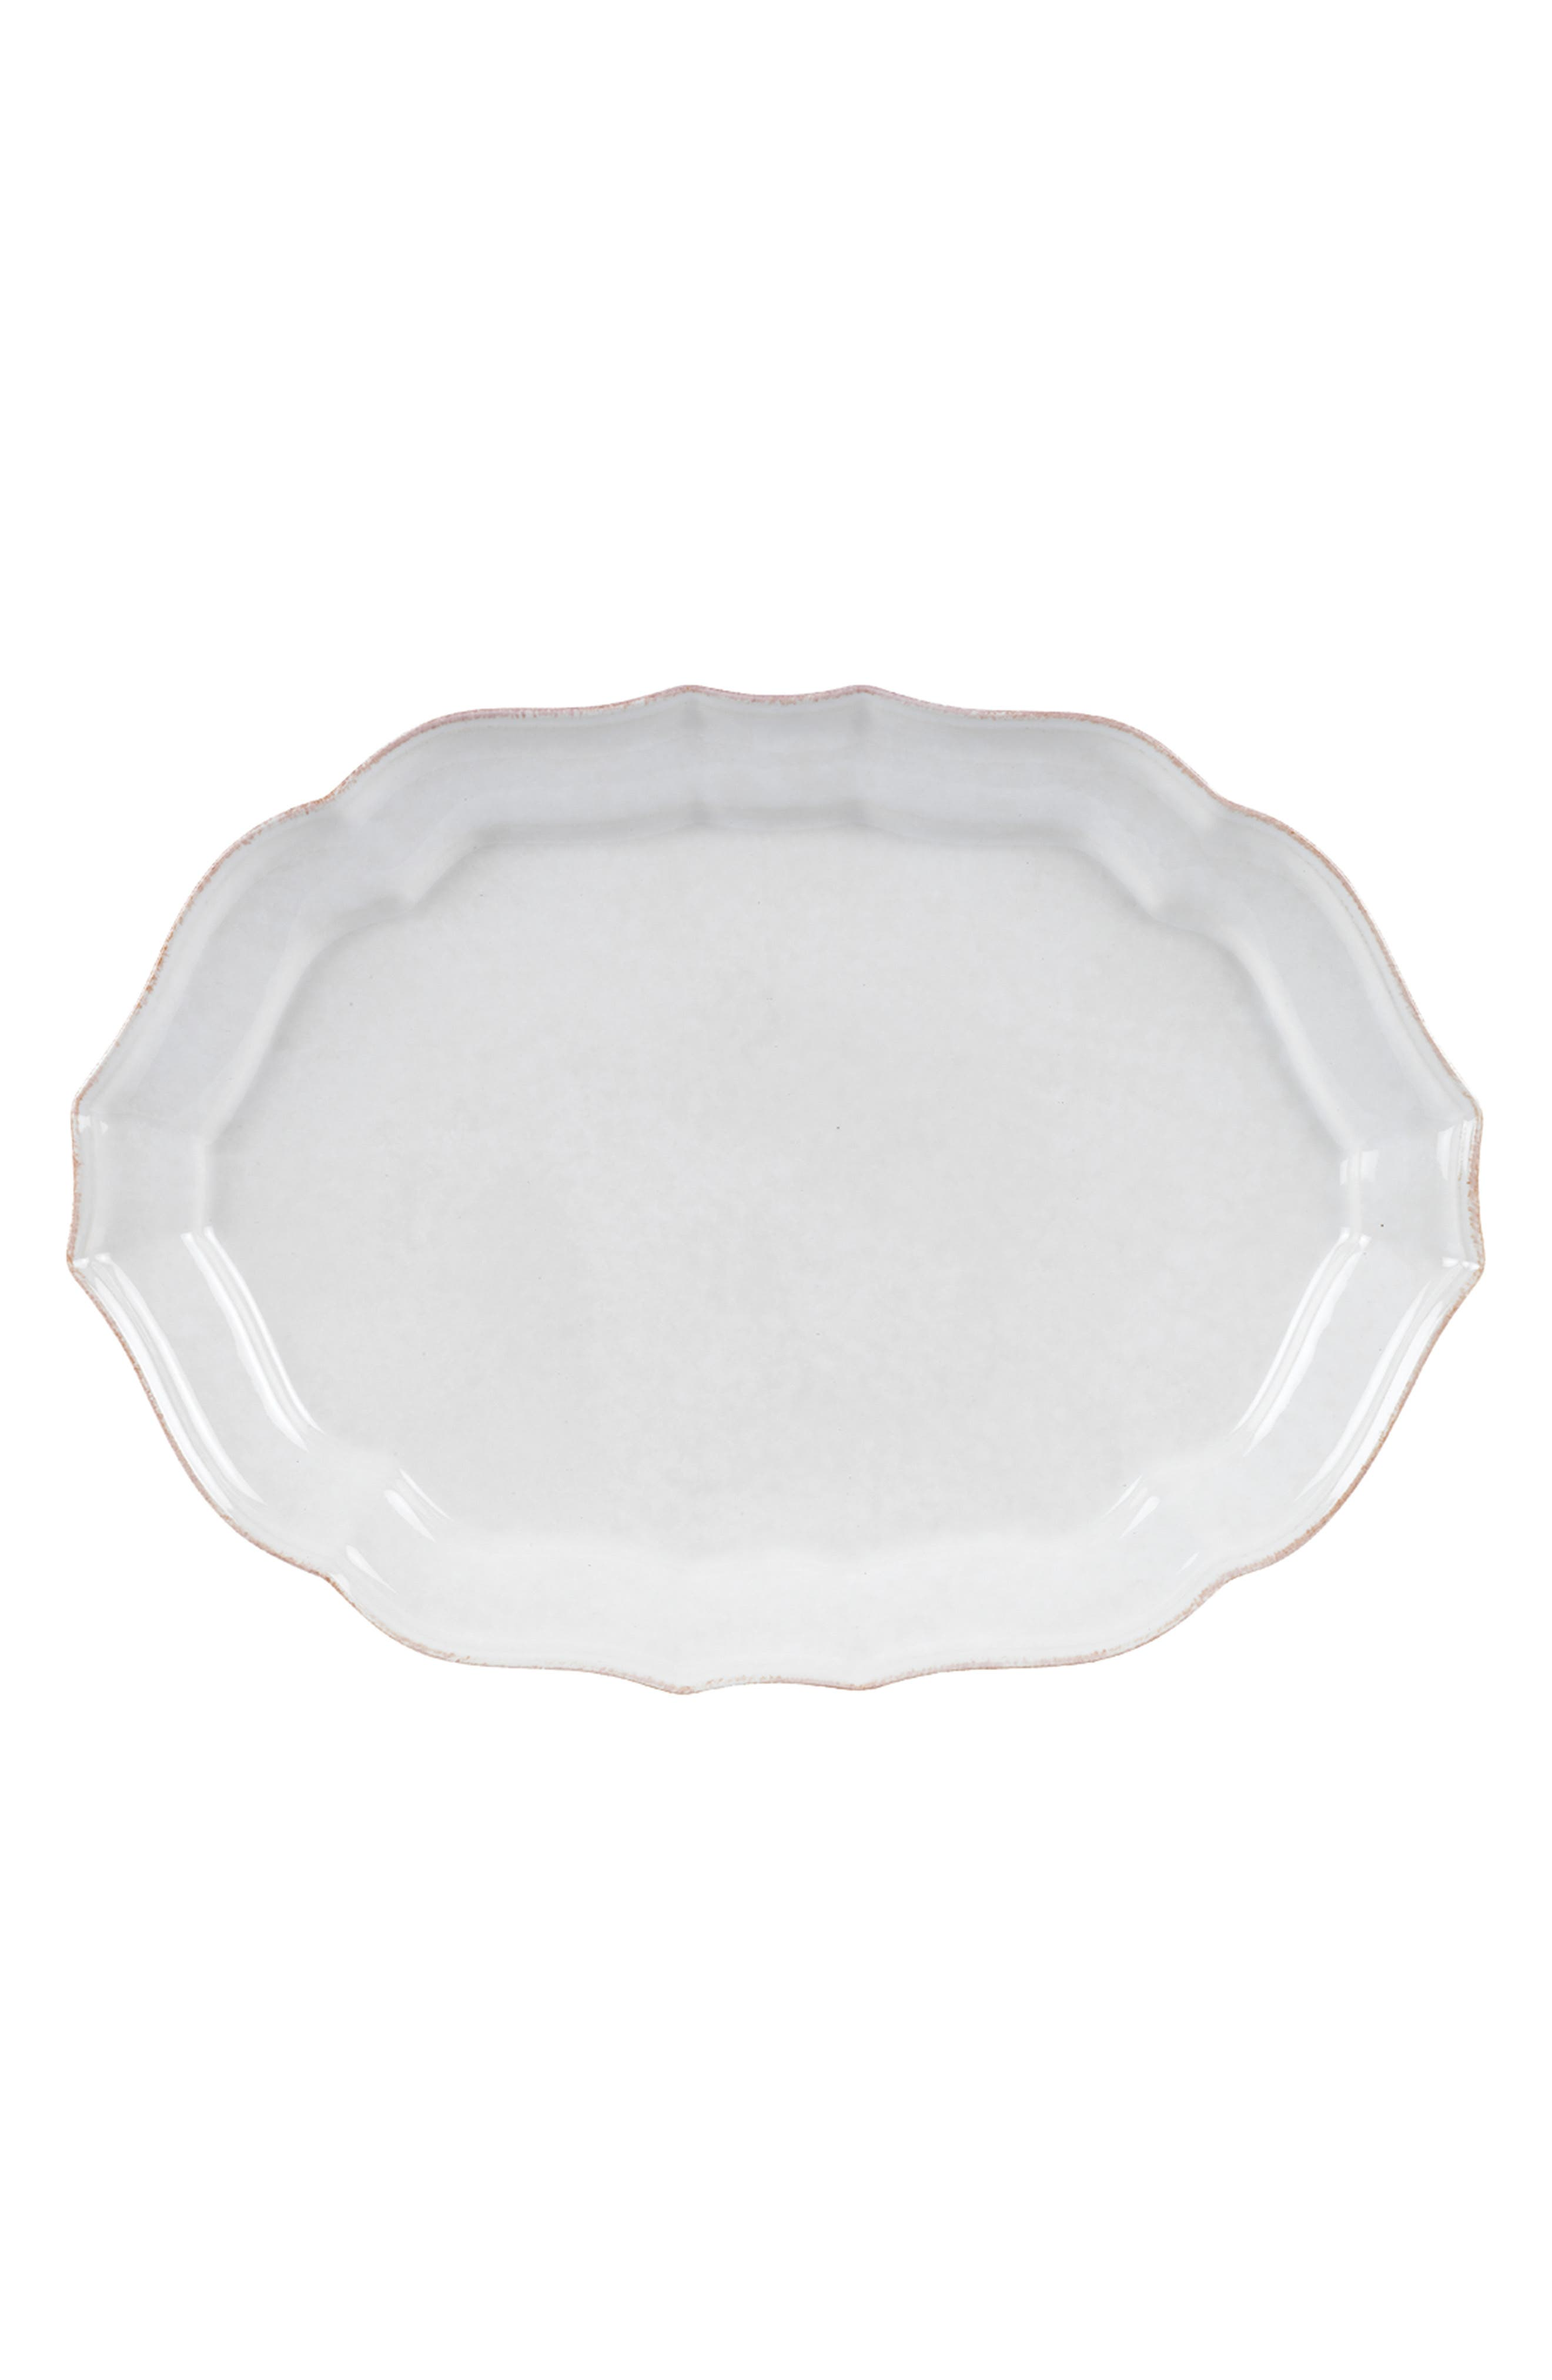 CASAFINA,                             Impressions Large Oval Platter,                             Main thumbnail 1, color,                             WHITE